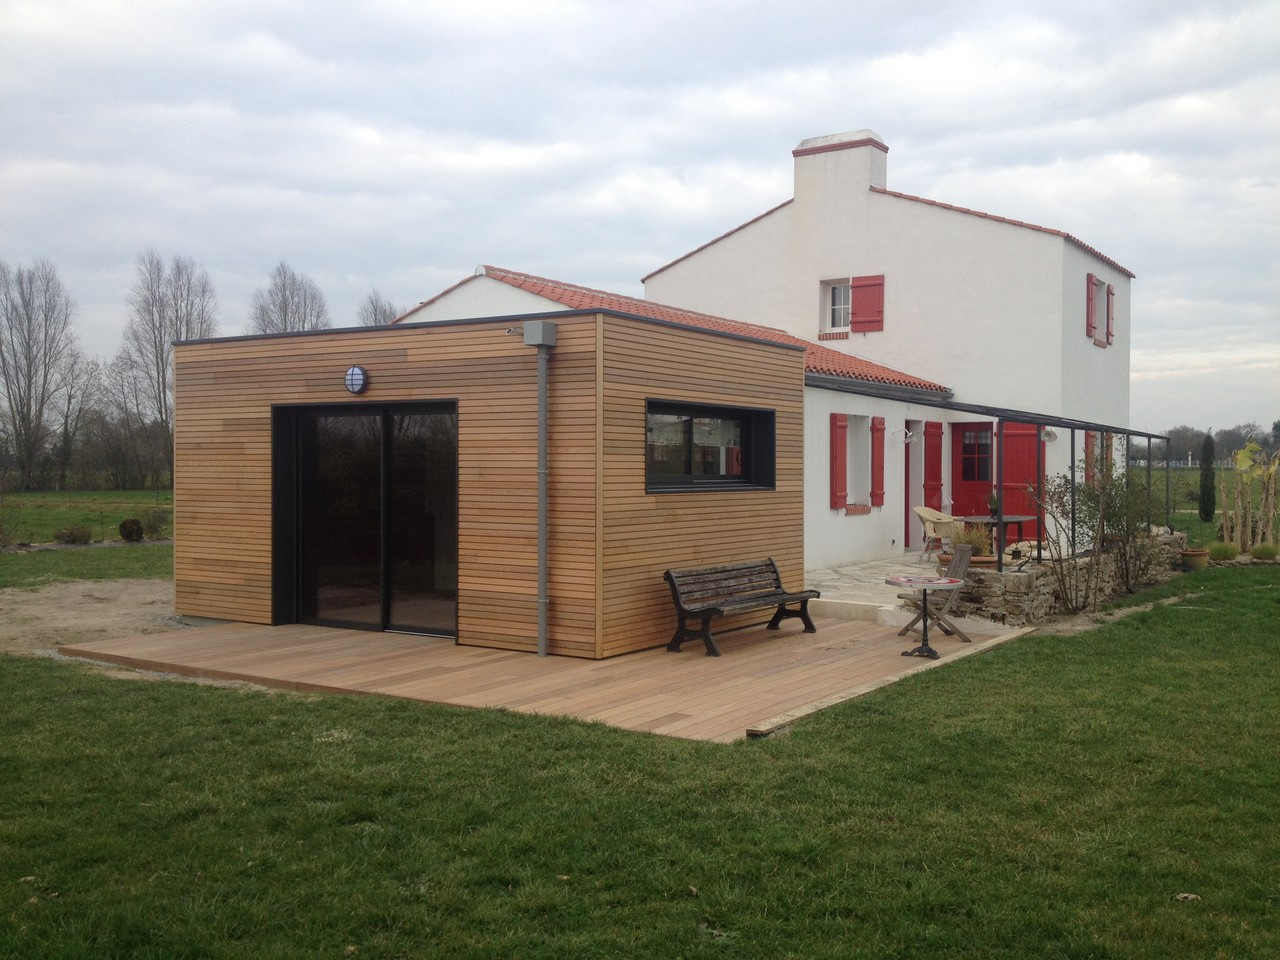 extension de maison en bois prix au m2 photos de